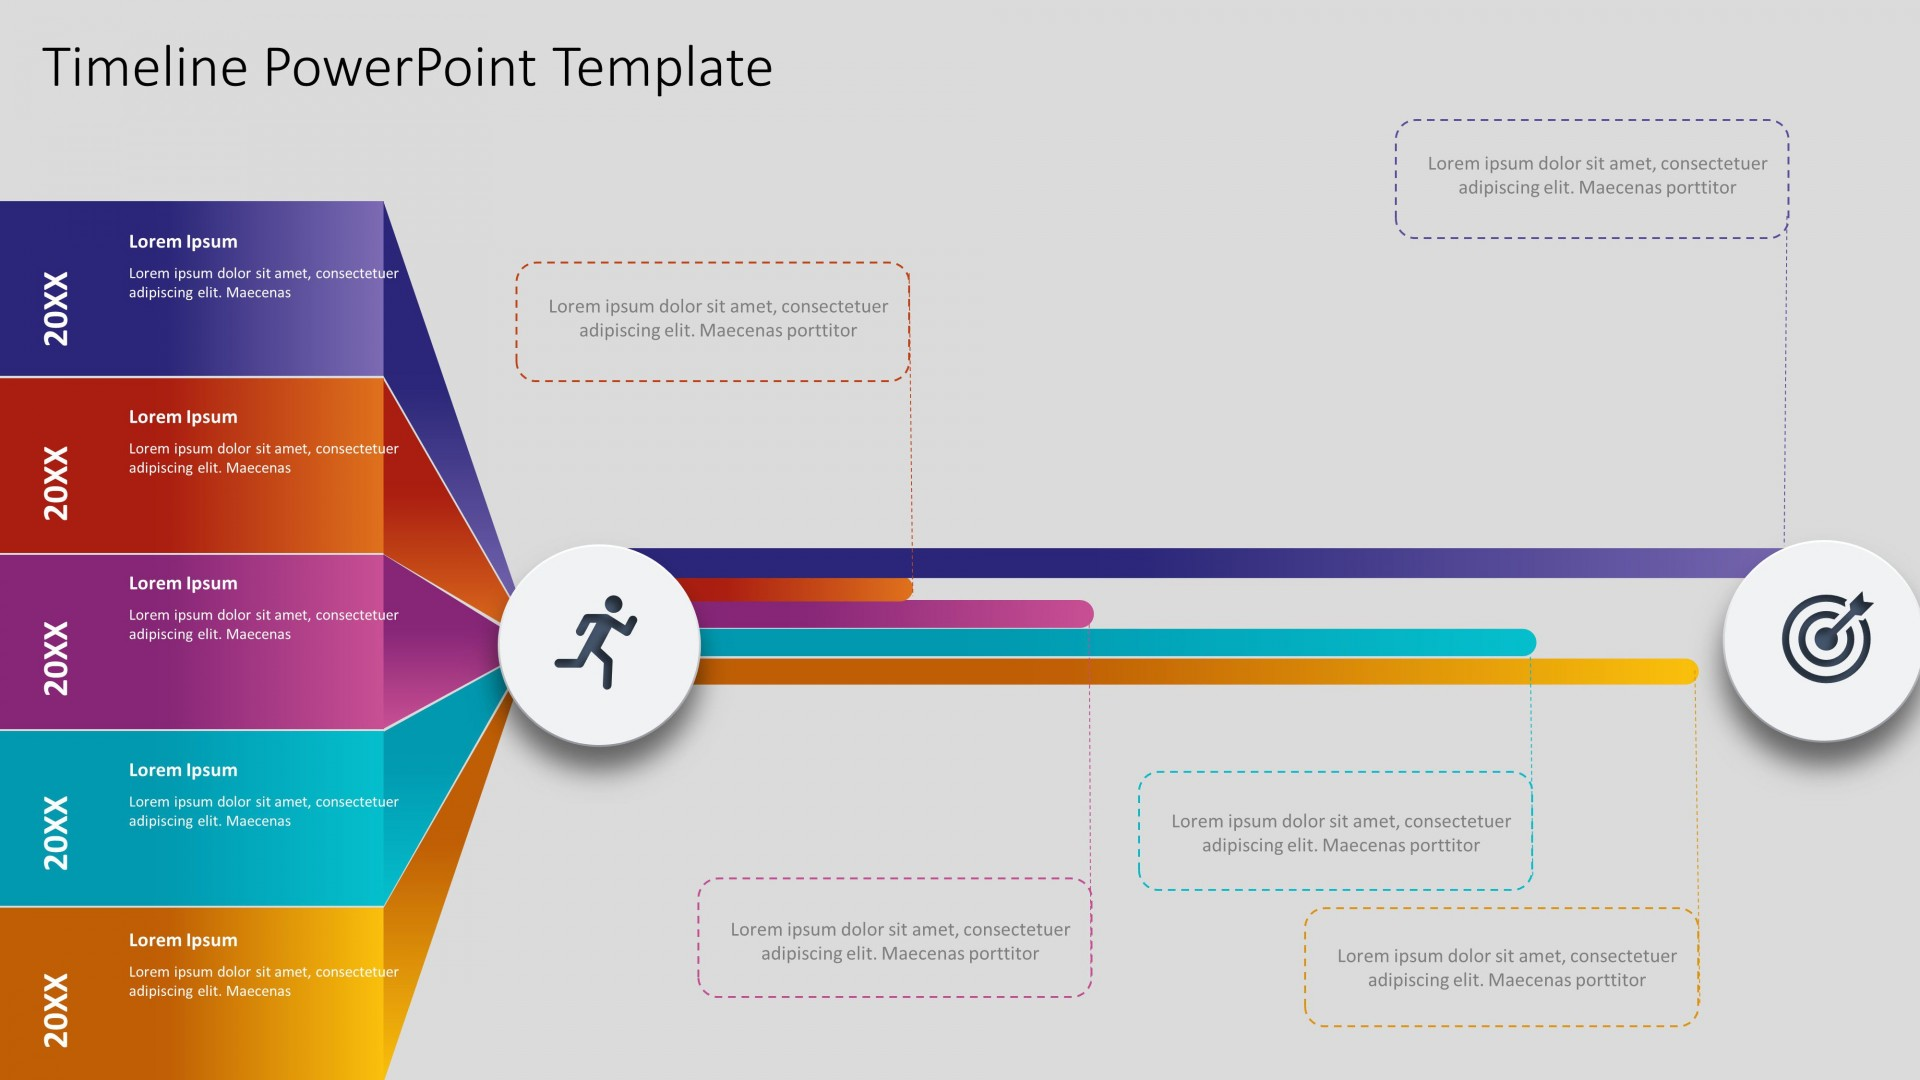 005 Phenomenal Timeline Graph Template For Powerpoint Presentation High Resolution 1920